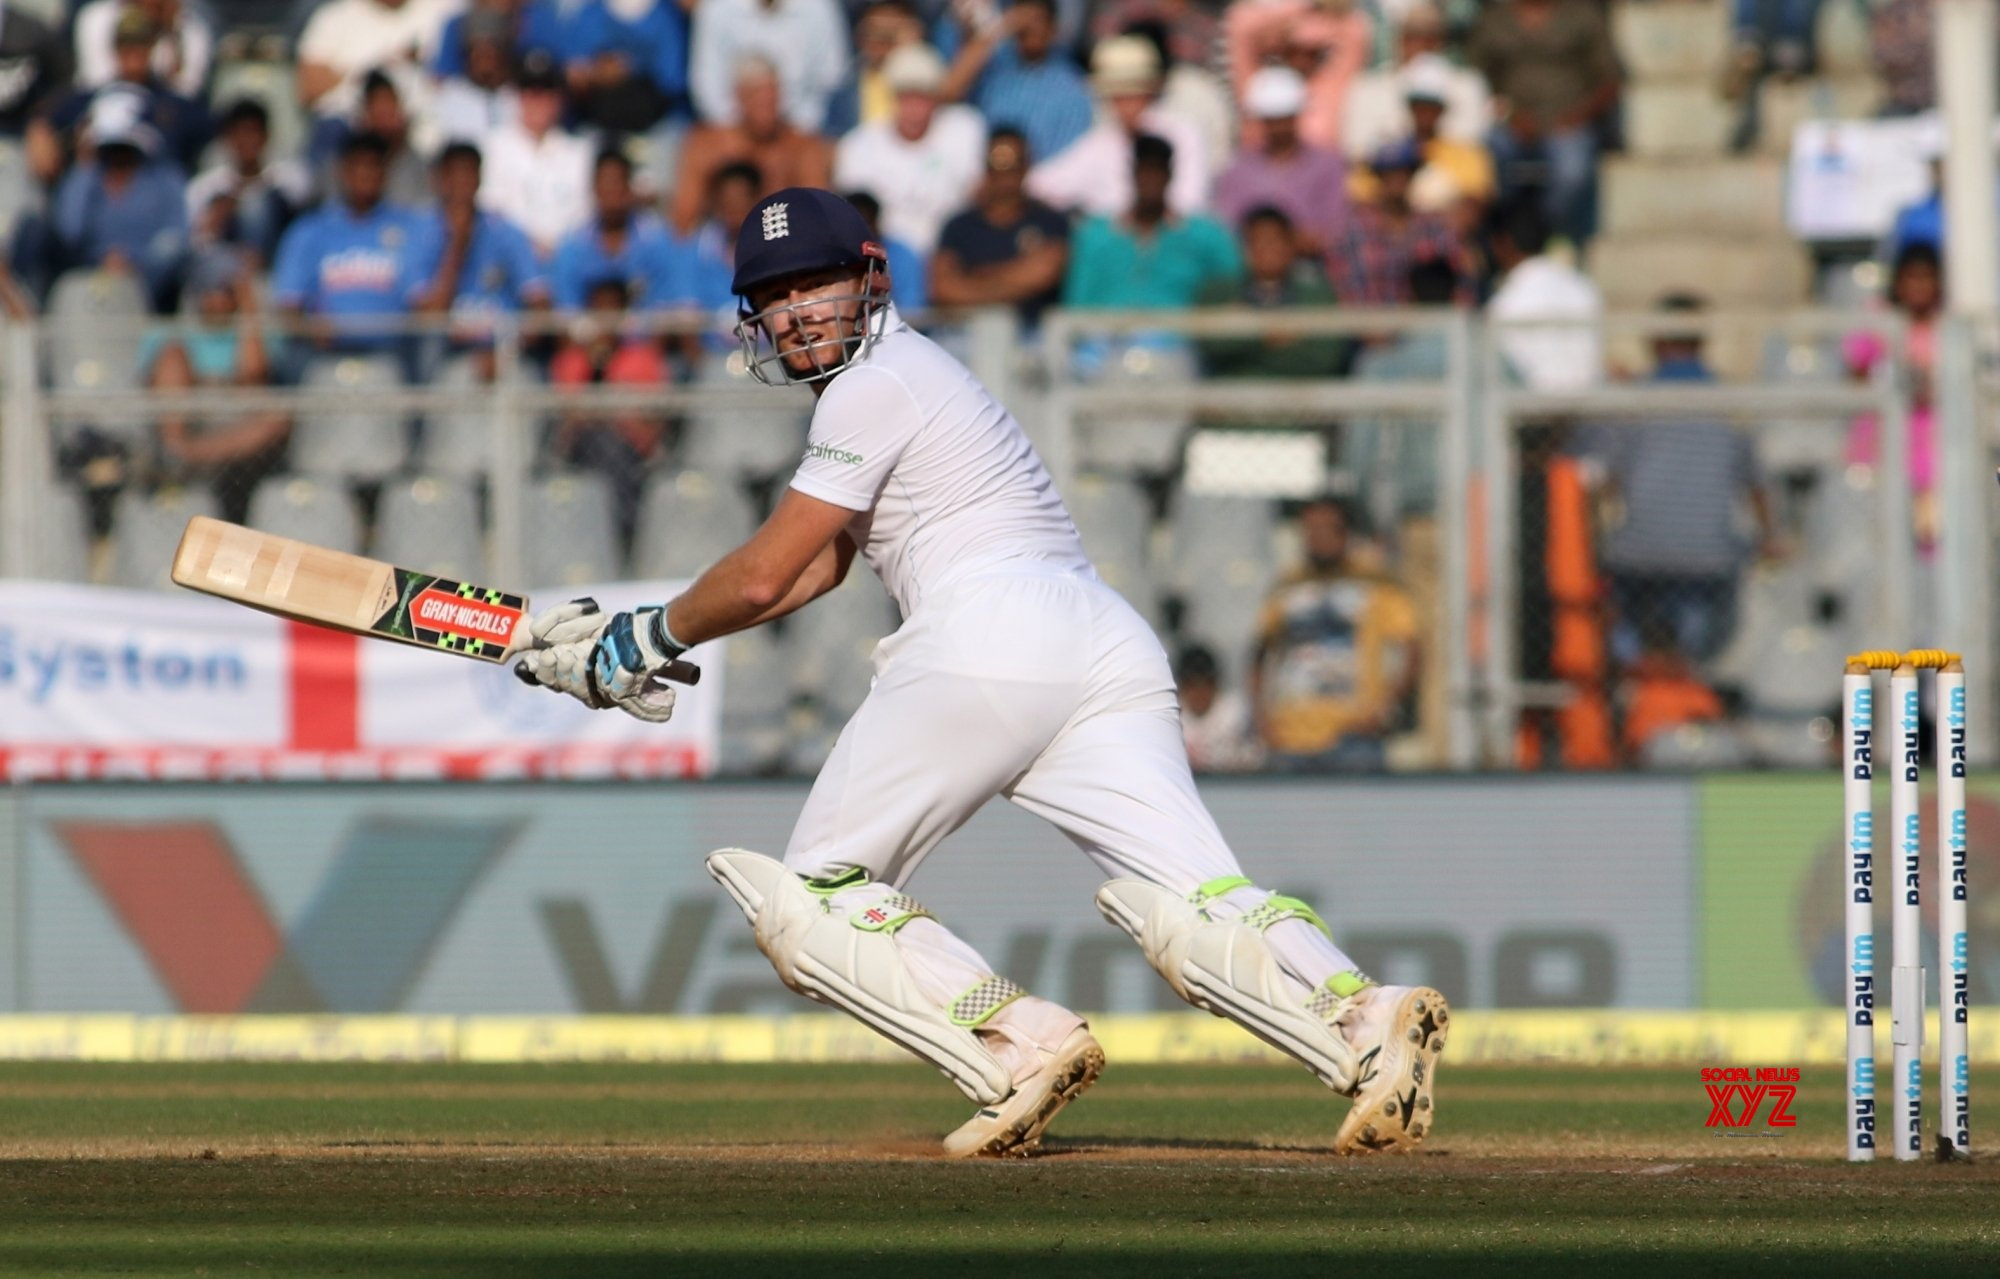 Ashes: Woakes, Bairstow help England to 201/6 at Tea